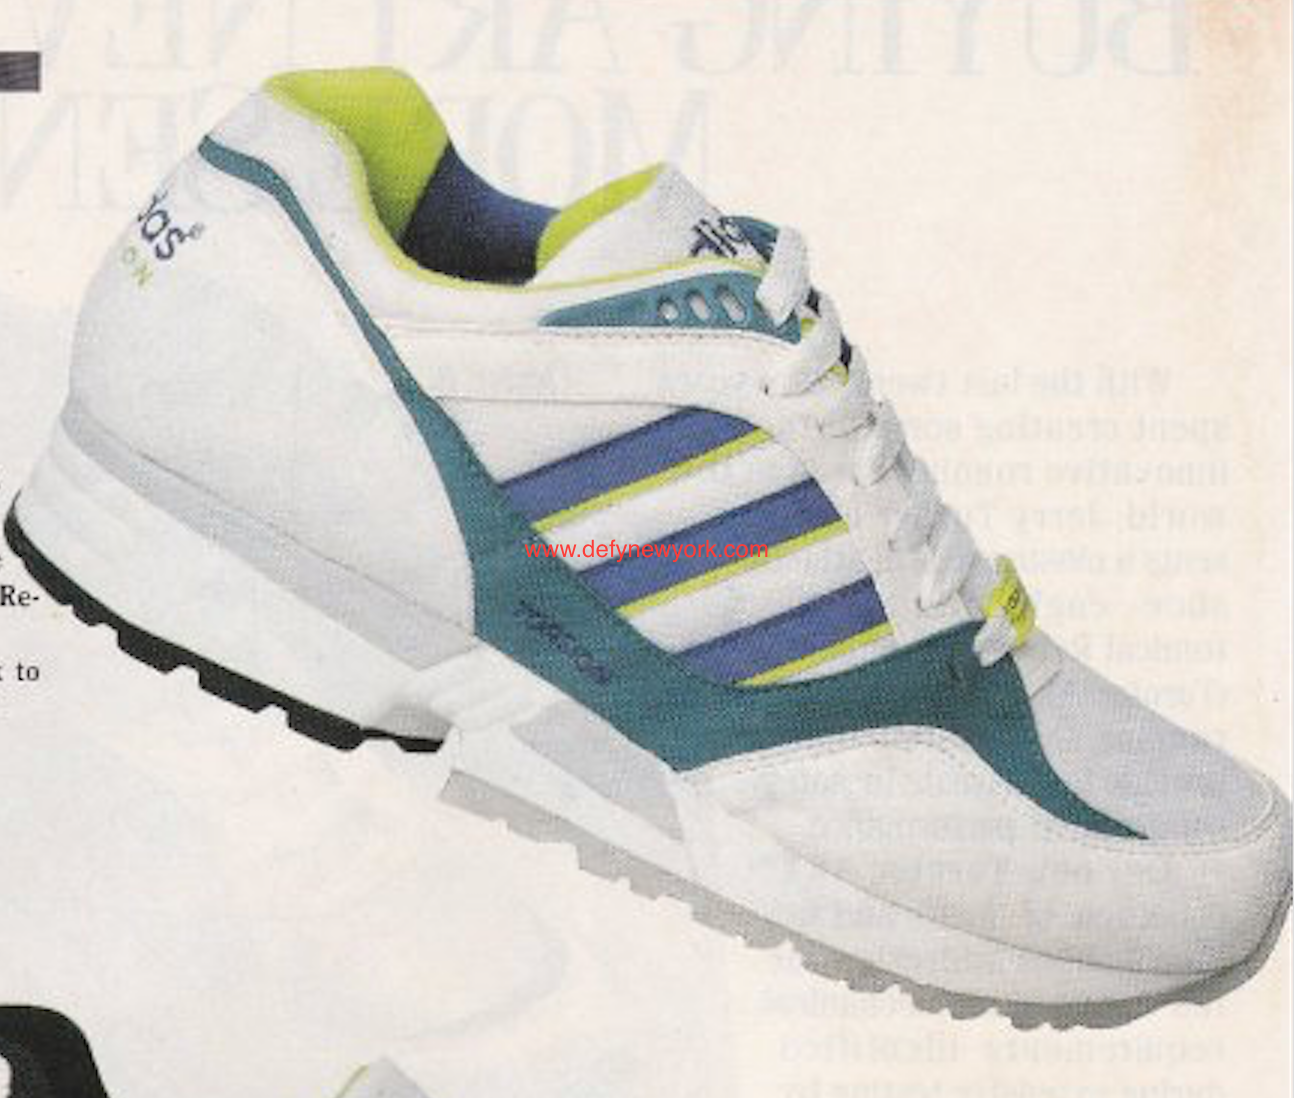 Adidas Shoes Torsion